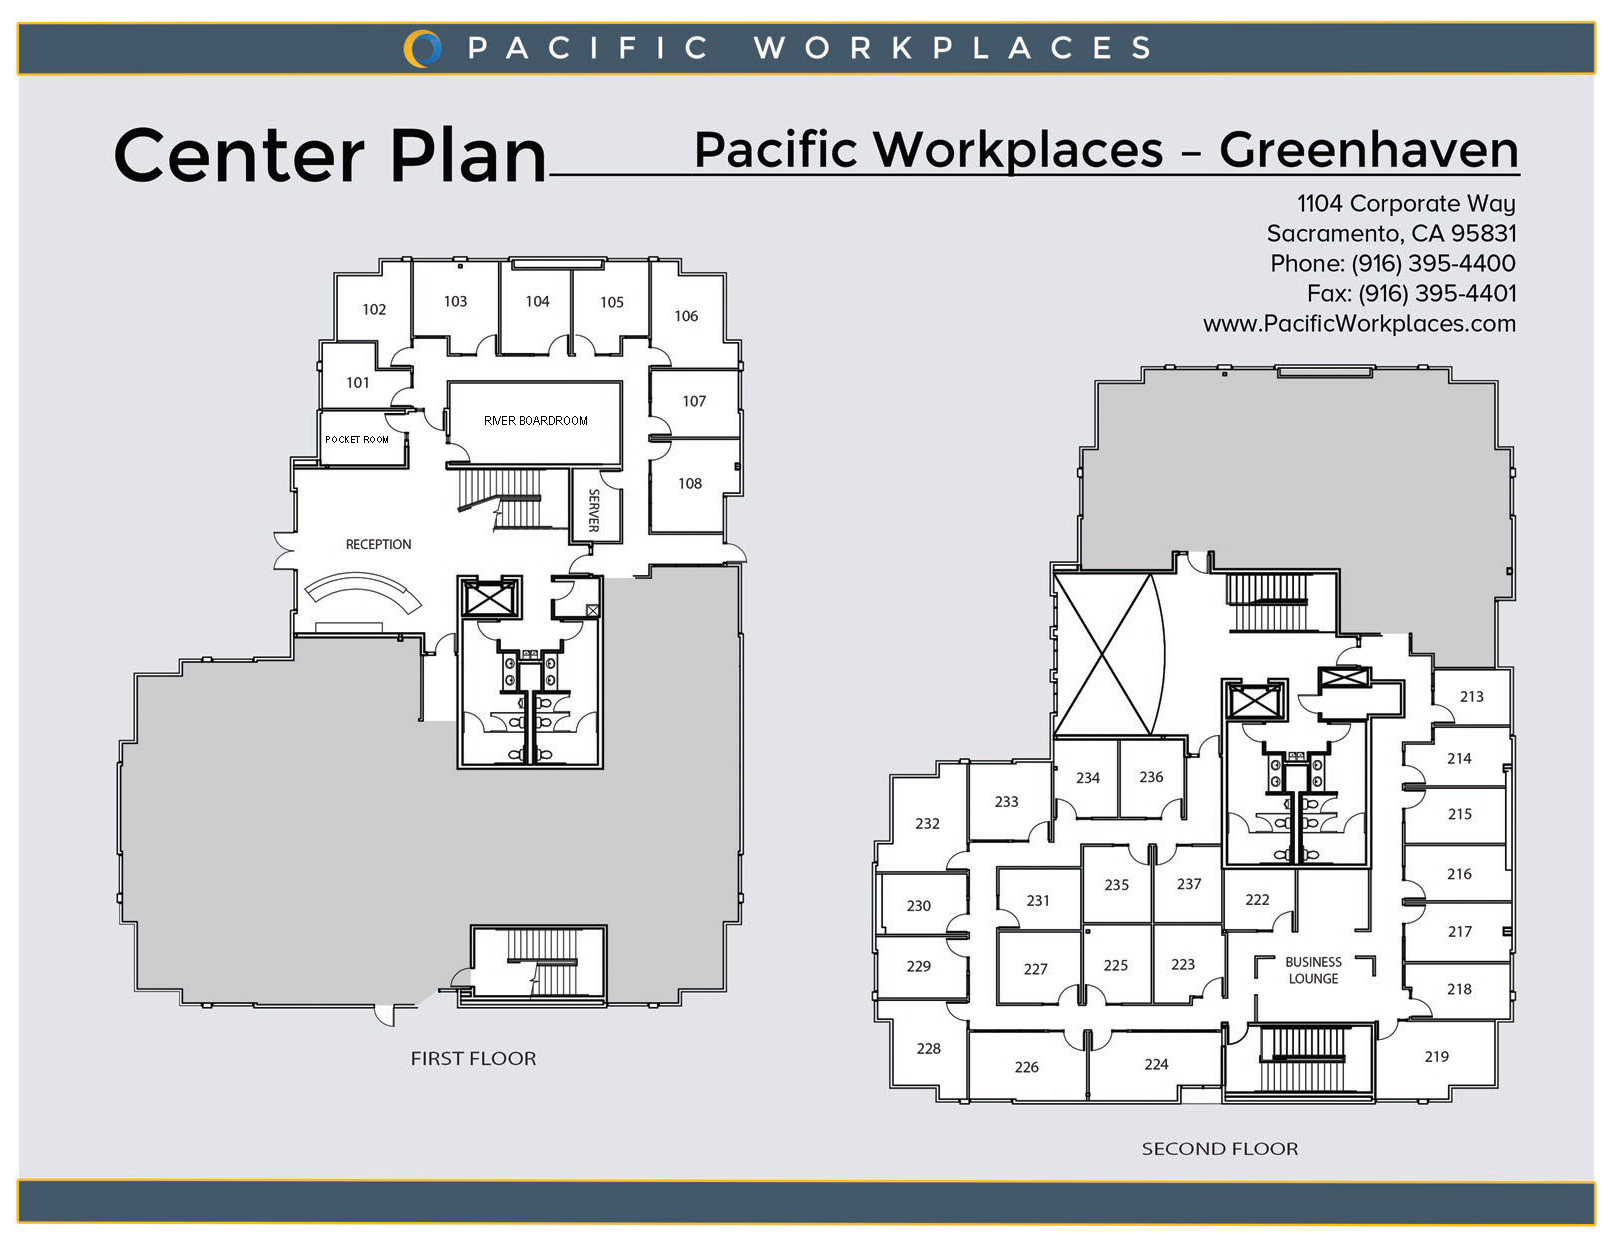 sacramento greenhaven office space pacific workplaces